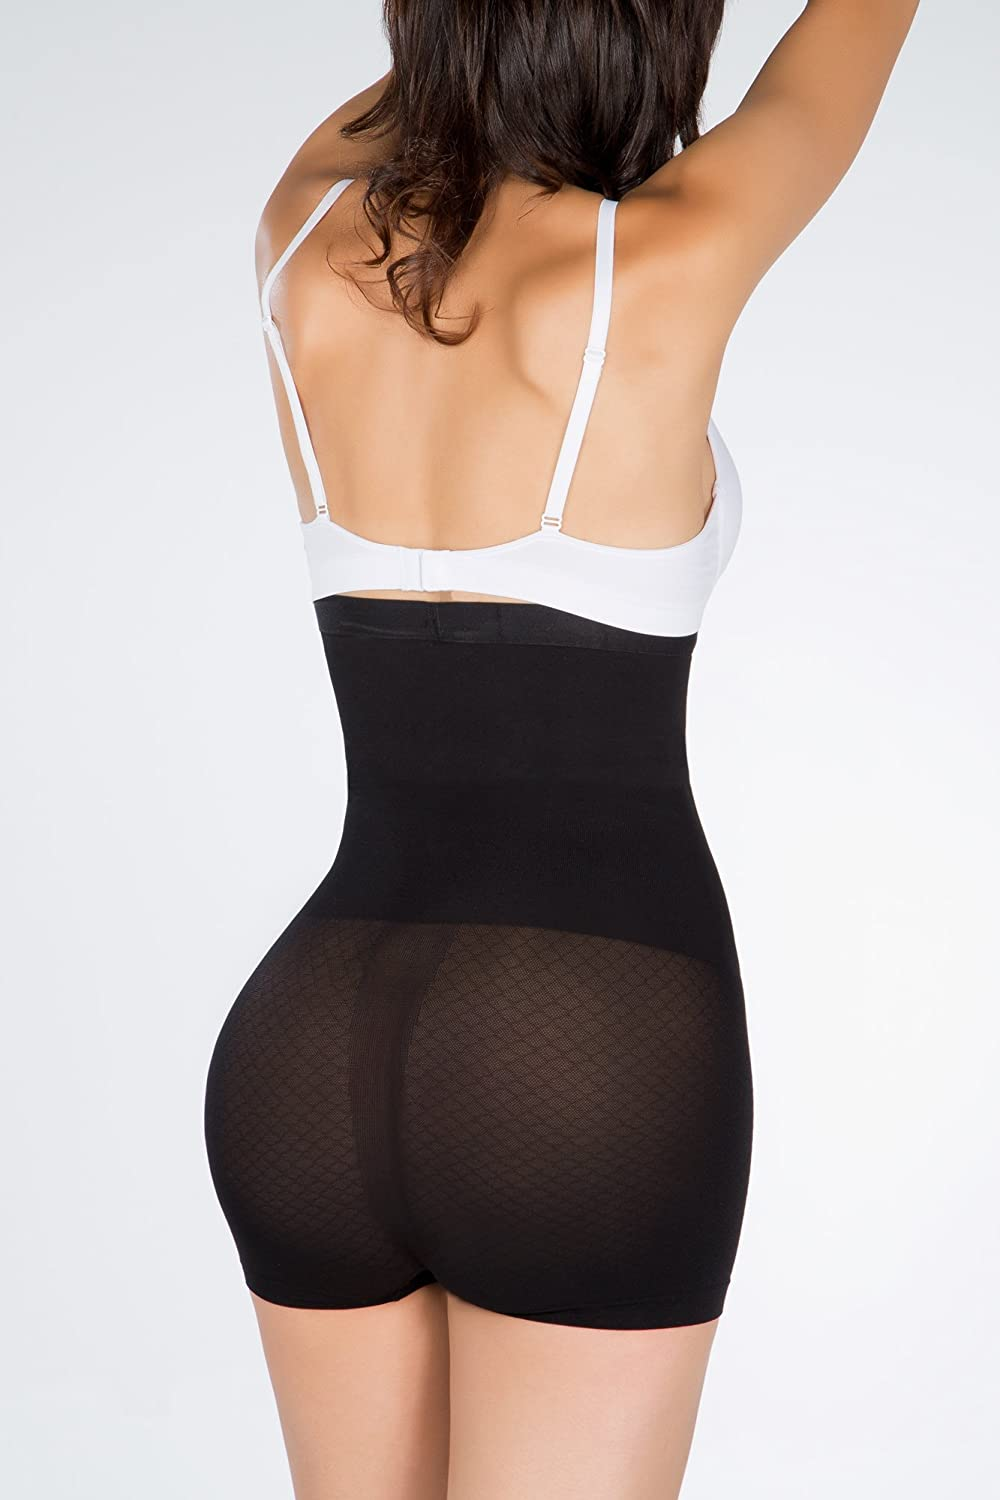 58c32039cc440 I m As Tall As Silicone-Lined Undetectable Edge High Waist Shaper Shorts  Doriane. at Amazon Women s Clothing store